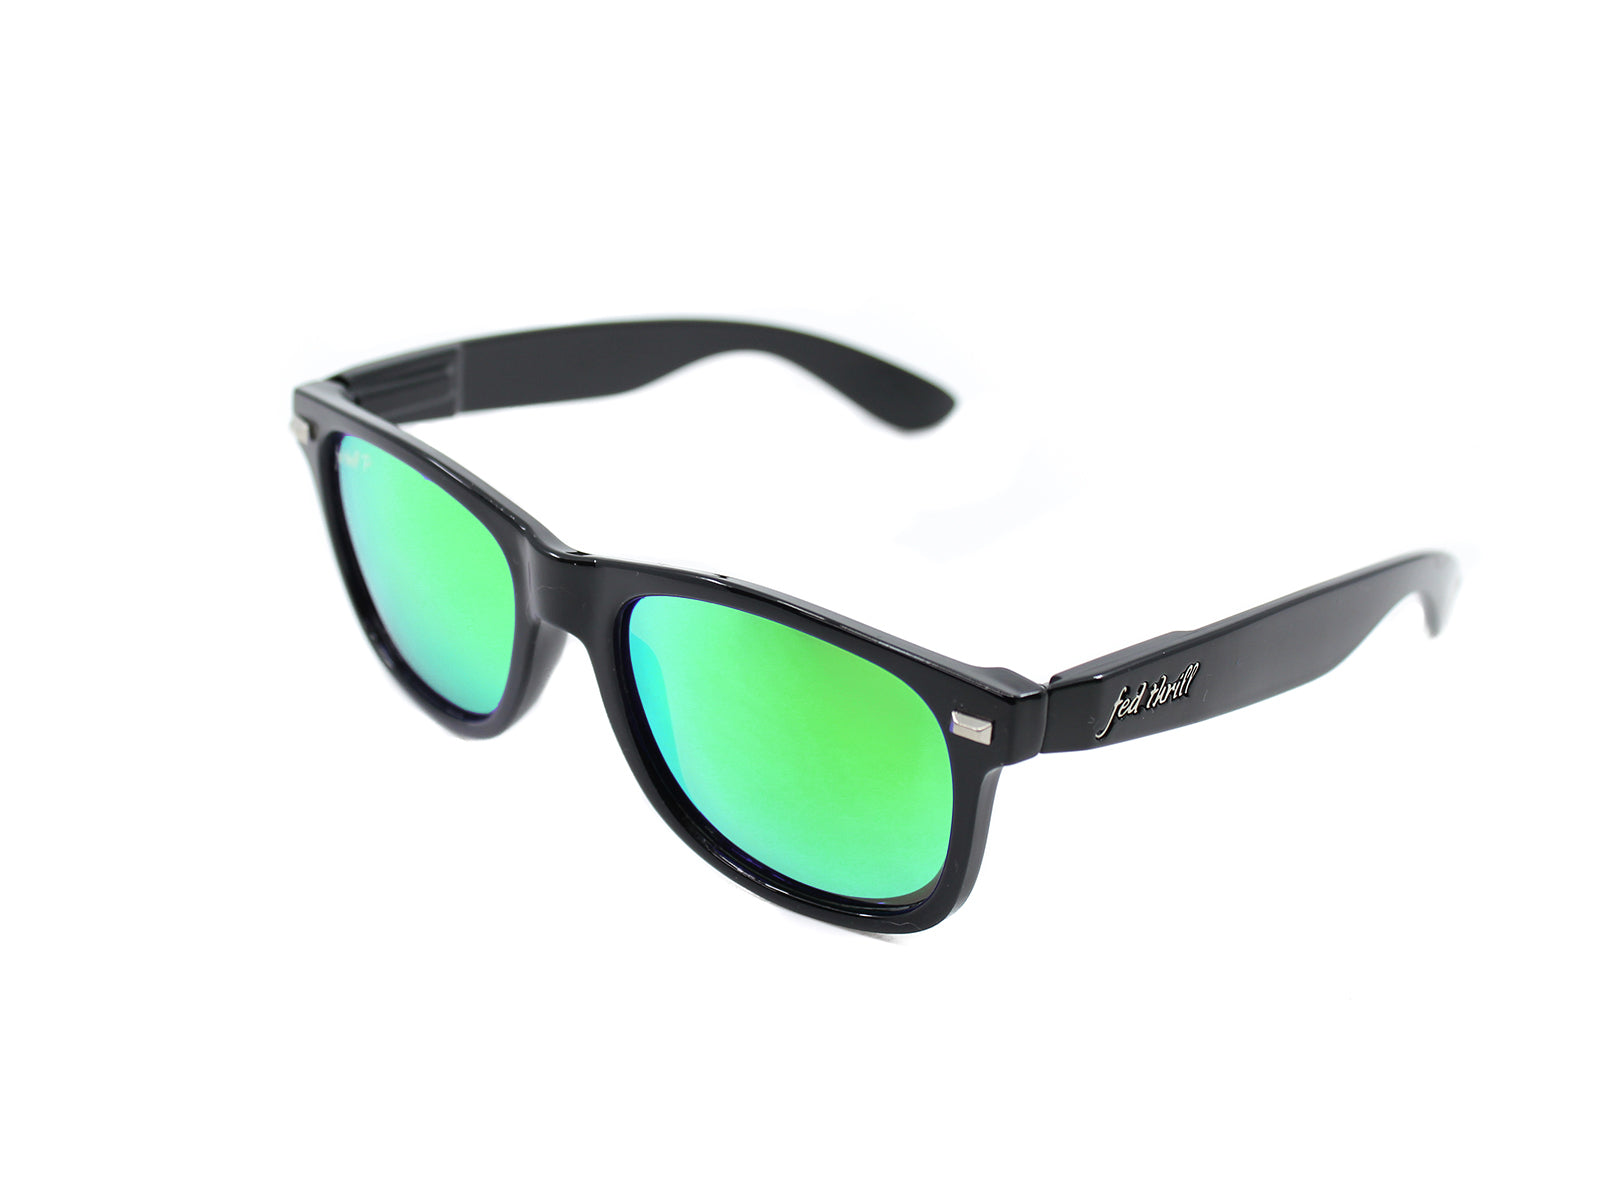 Fultons -  Revolts: Glossy Black / Mirrored Green Polarized